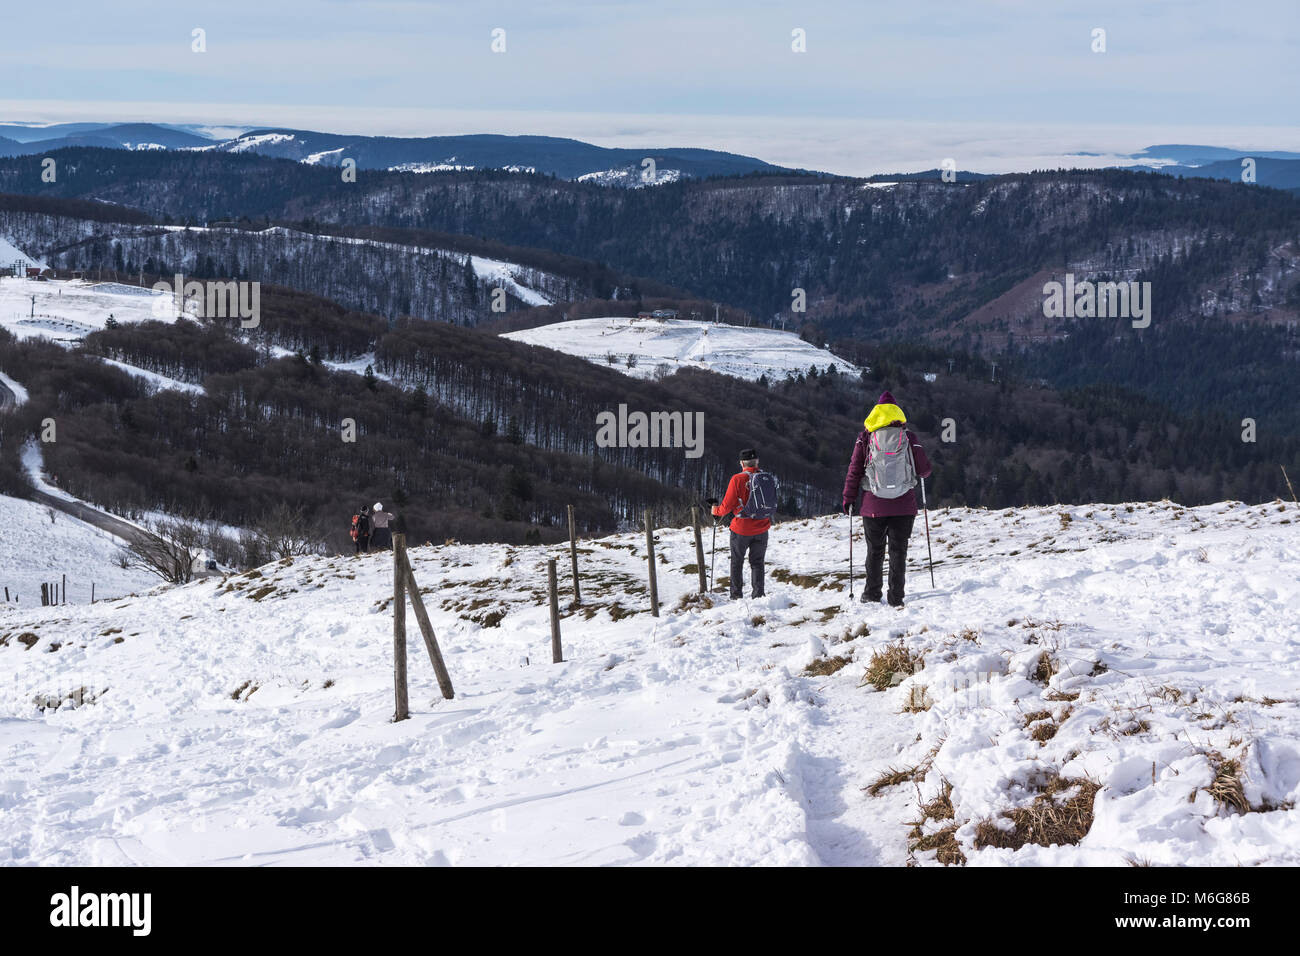 People hiking in the Vosges mountains in winter on a snowy ridge, Hohneck, France. - Stock Image